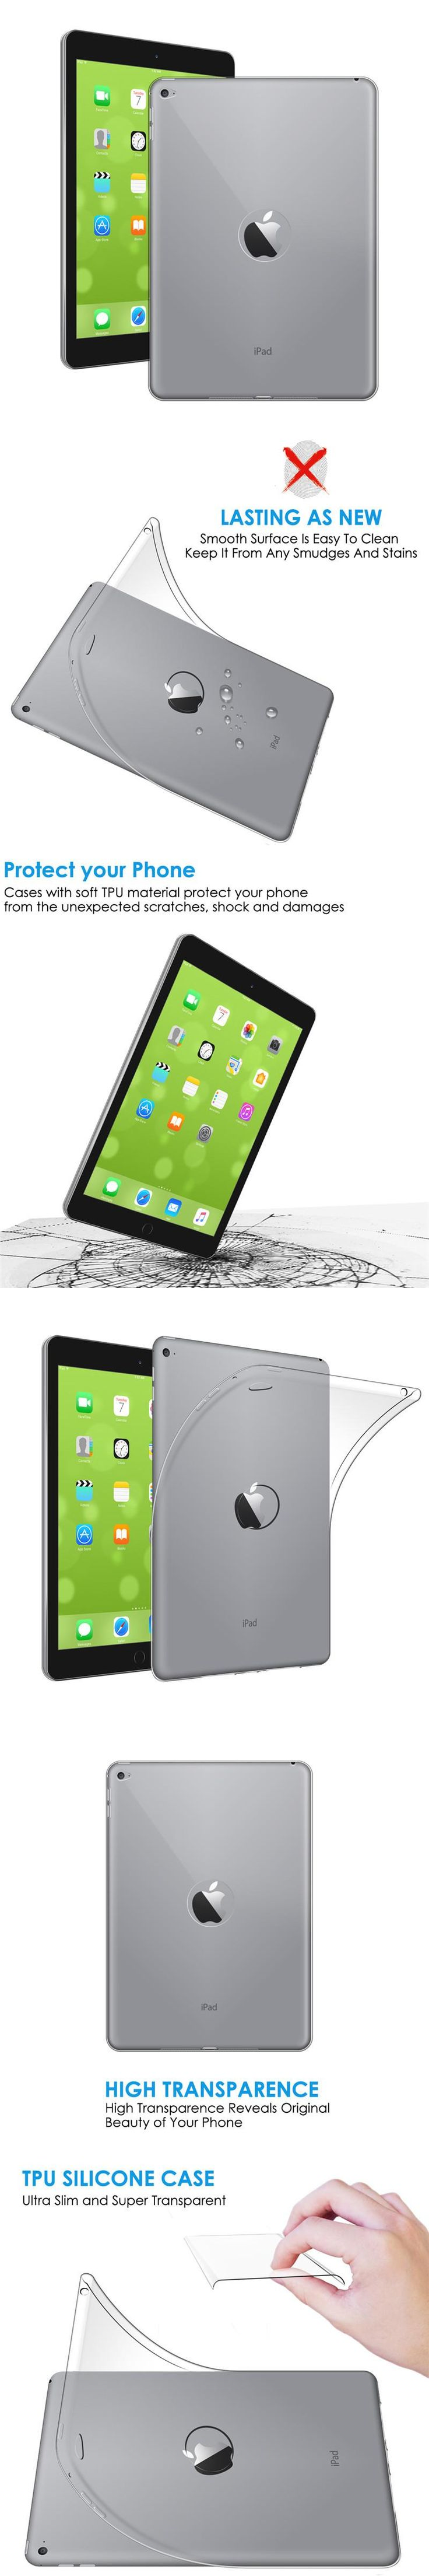 Qosea For Apple i Pad Air2 Case Ultra-thin Anti-Knock Slim Silicone Soft TPU Coque For I Pad Air 2 Transparent Protective Cover